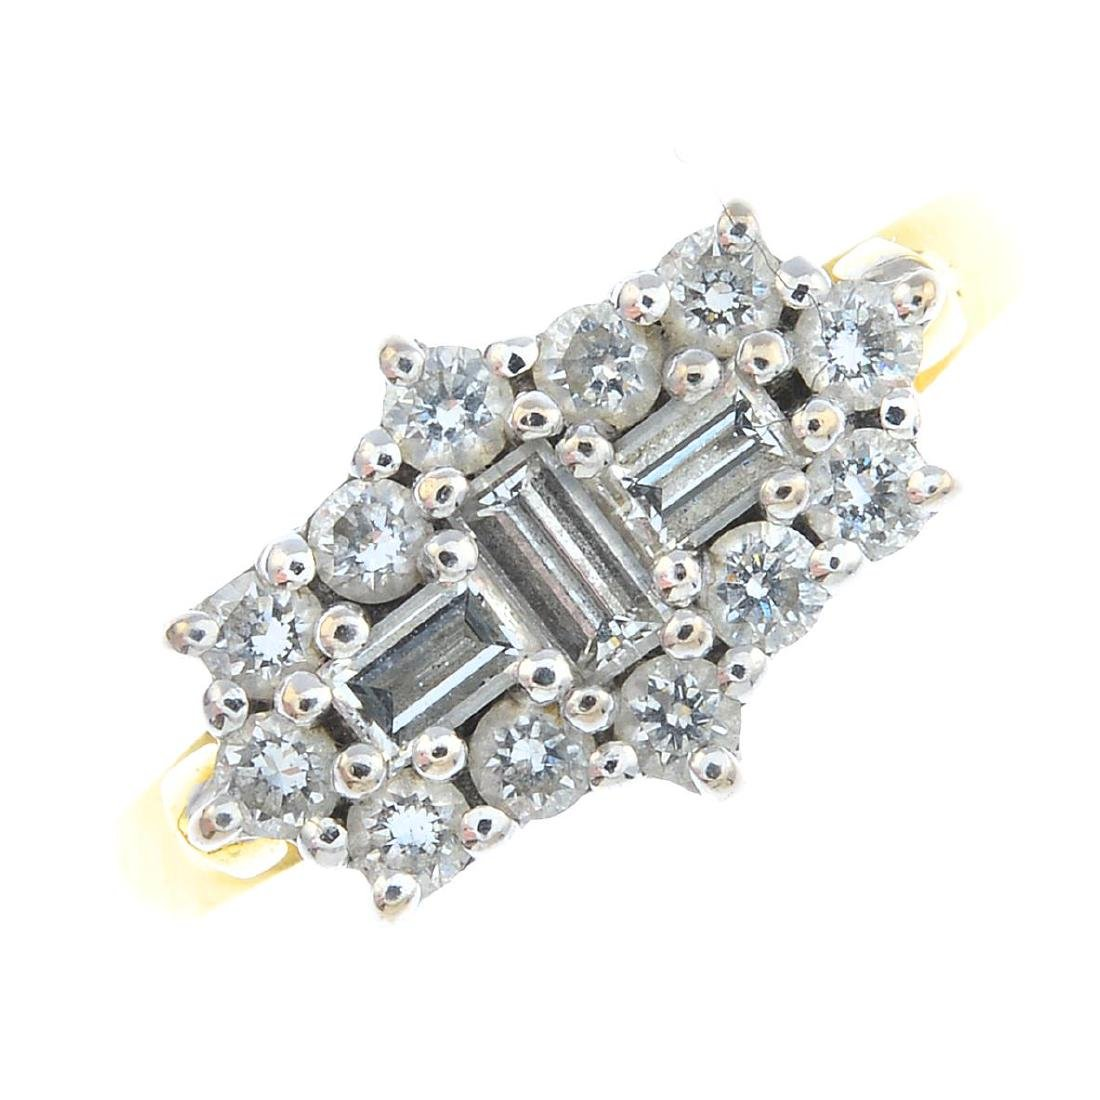 An 18ct gold diamond dress ring. The alternating